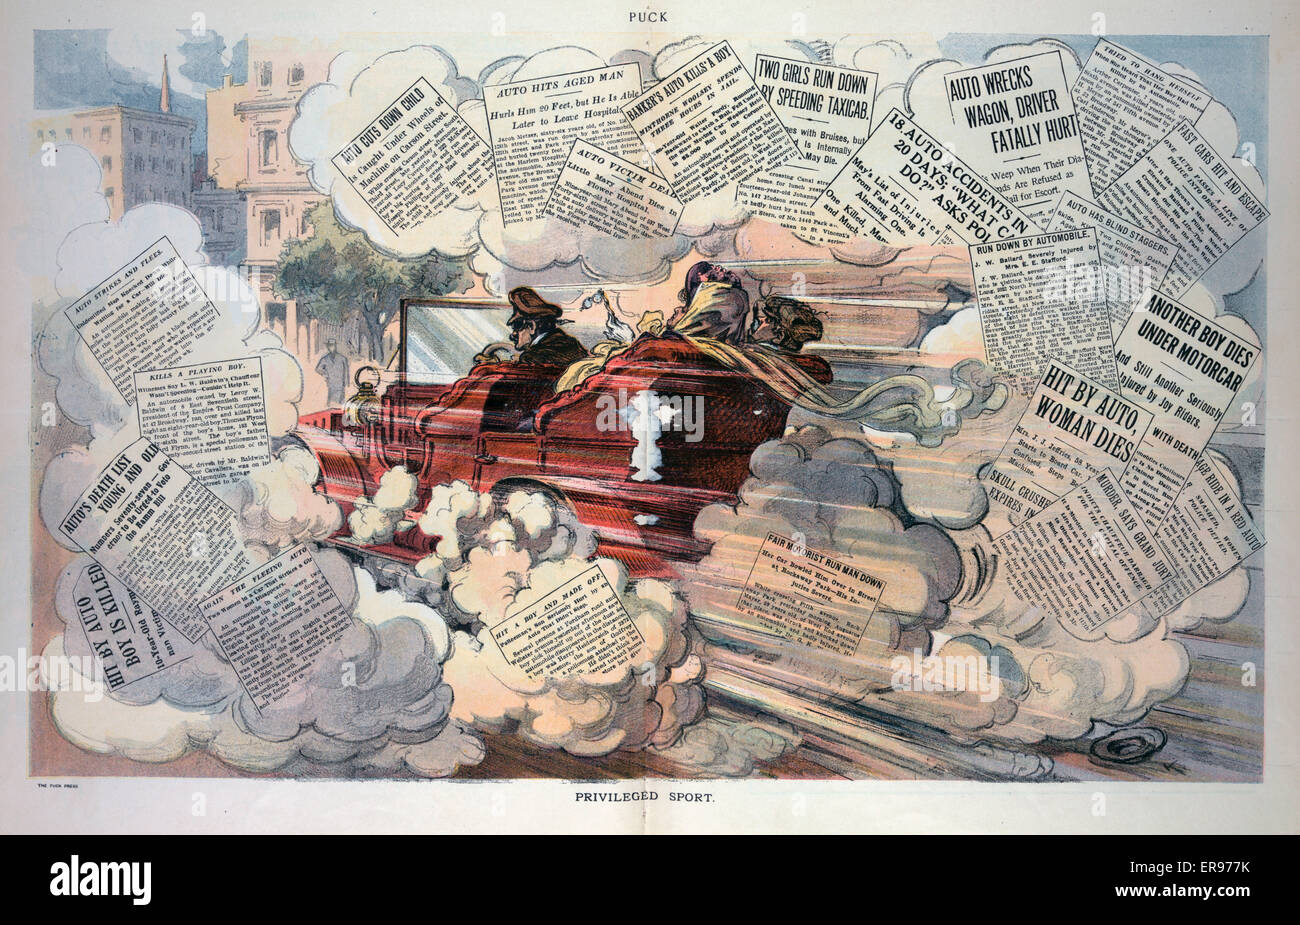 Privileged sport. Illustration shows an automobile driven by a chauffeur speeding down a road, surrounded by newspaper - Stock Image